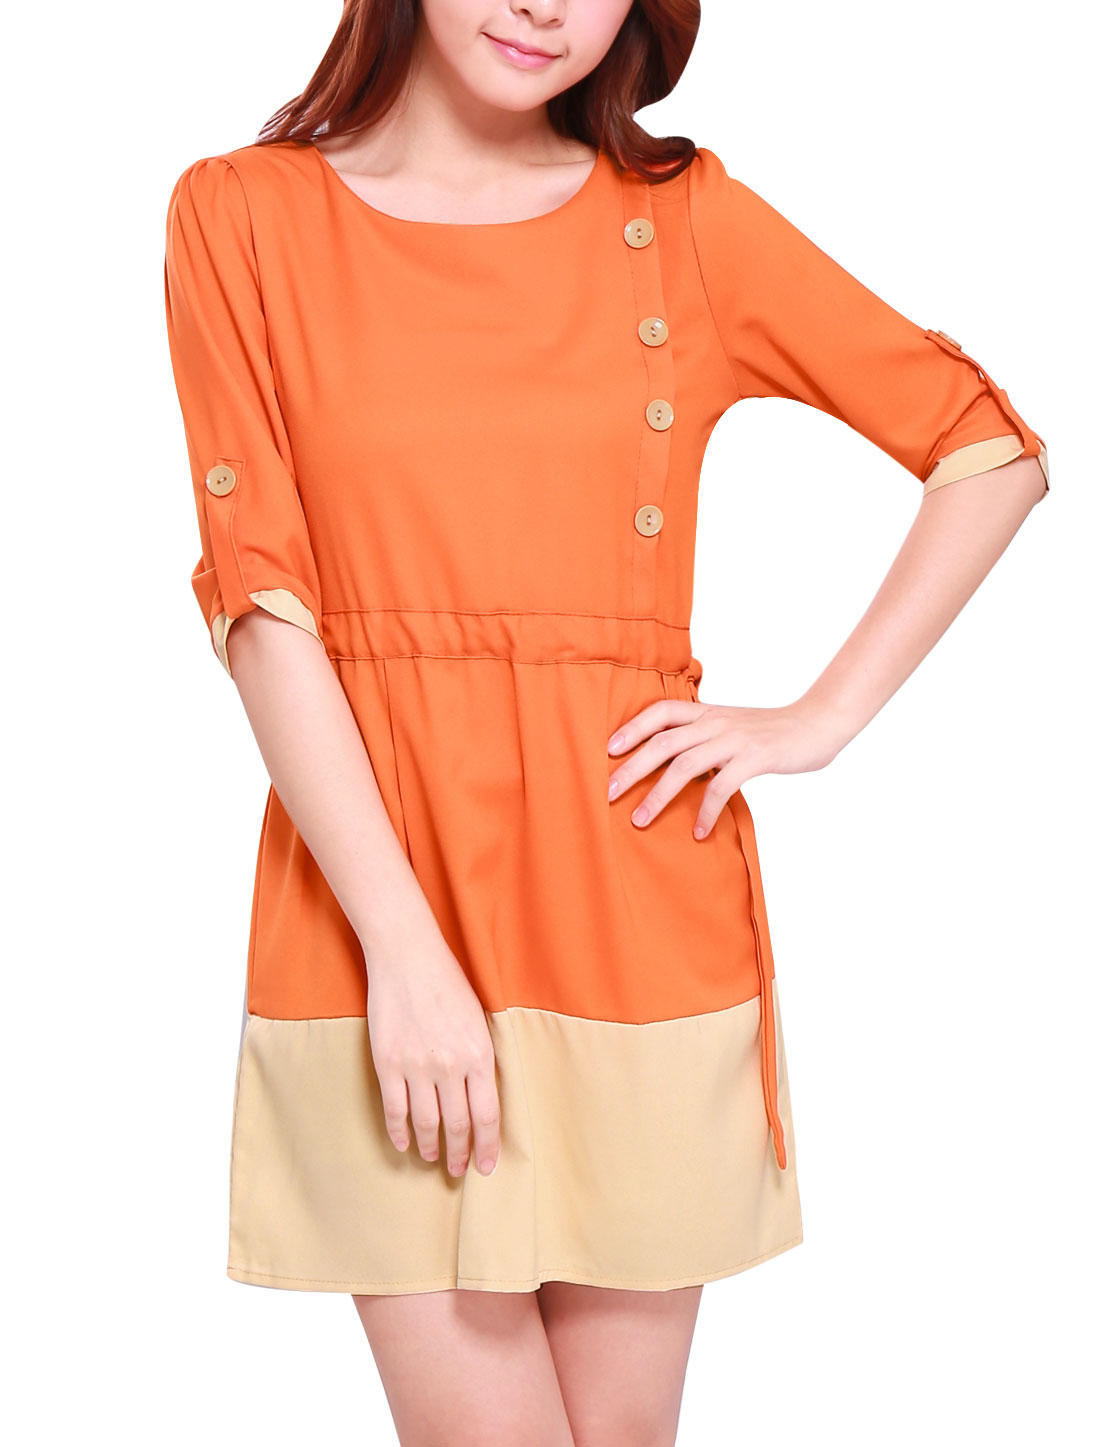 Ladies Trendy 3/4 Sleeve Cuffed Drawstring Waist A Line Dress Orange M